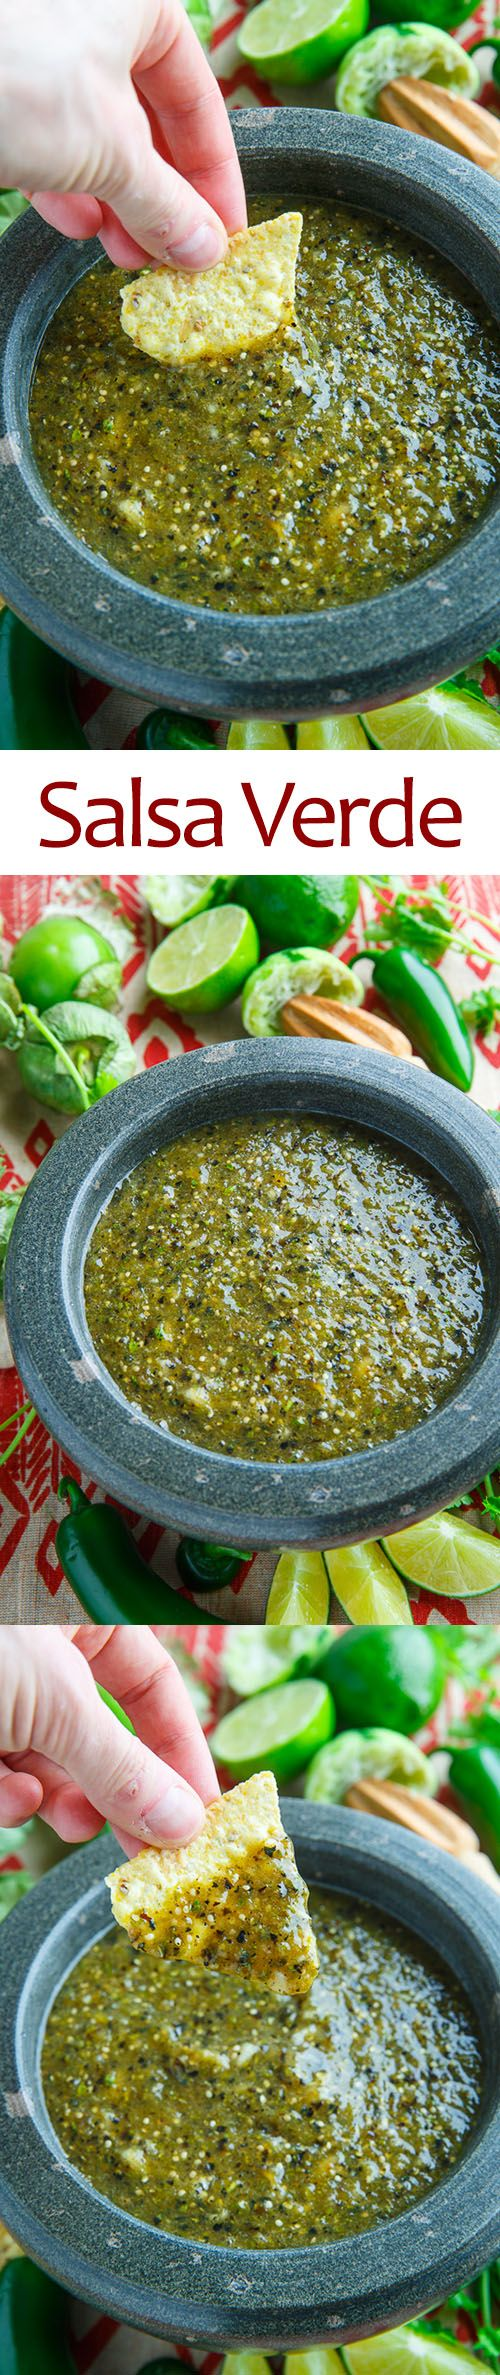 Salsa Verde. Made some modifications: only had 10 oz of tomatillos so reduced everything but the lime juice and cilantro. Used 3 banana peppers instead of a jalapeno and walla walls sweet onion.